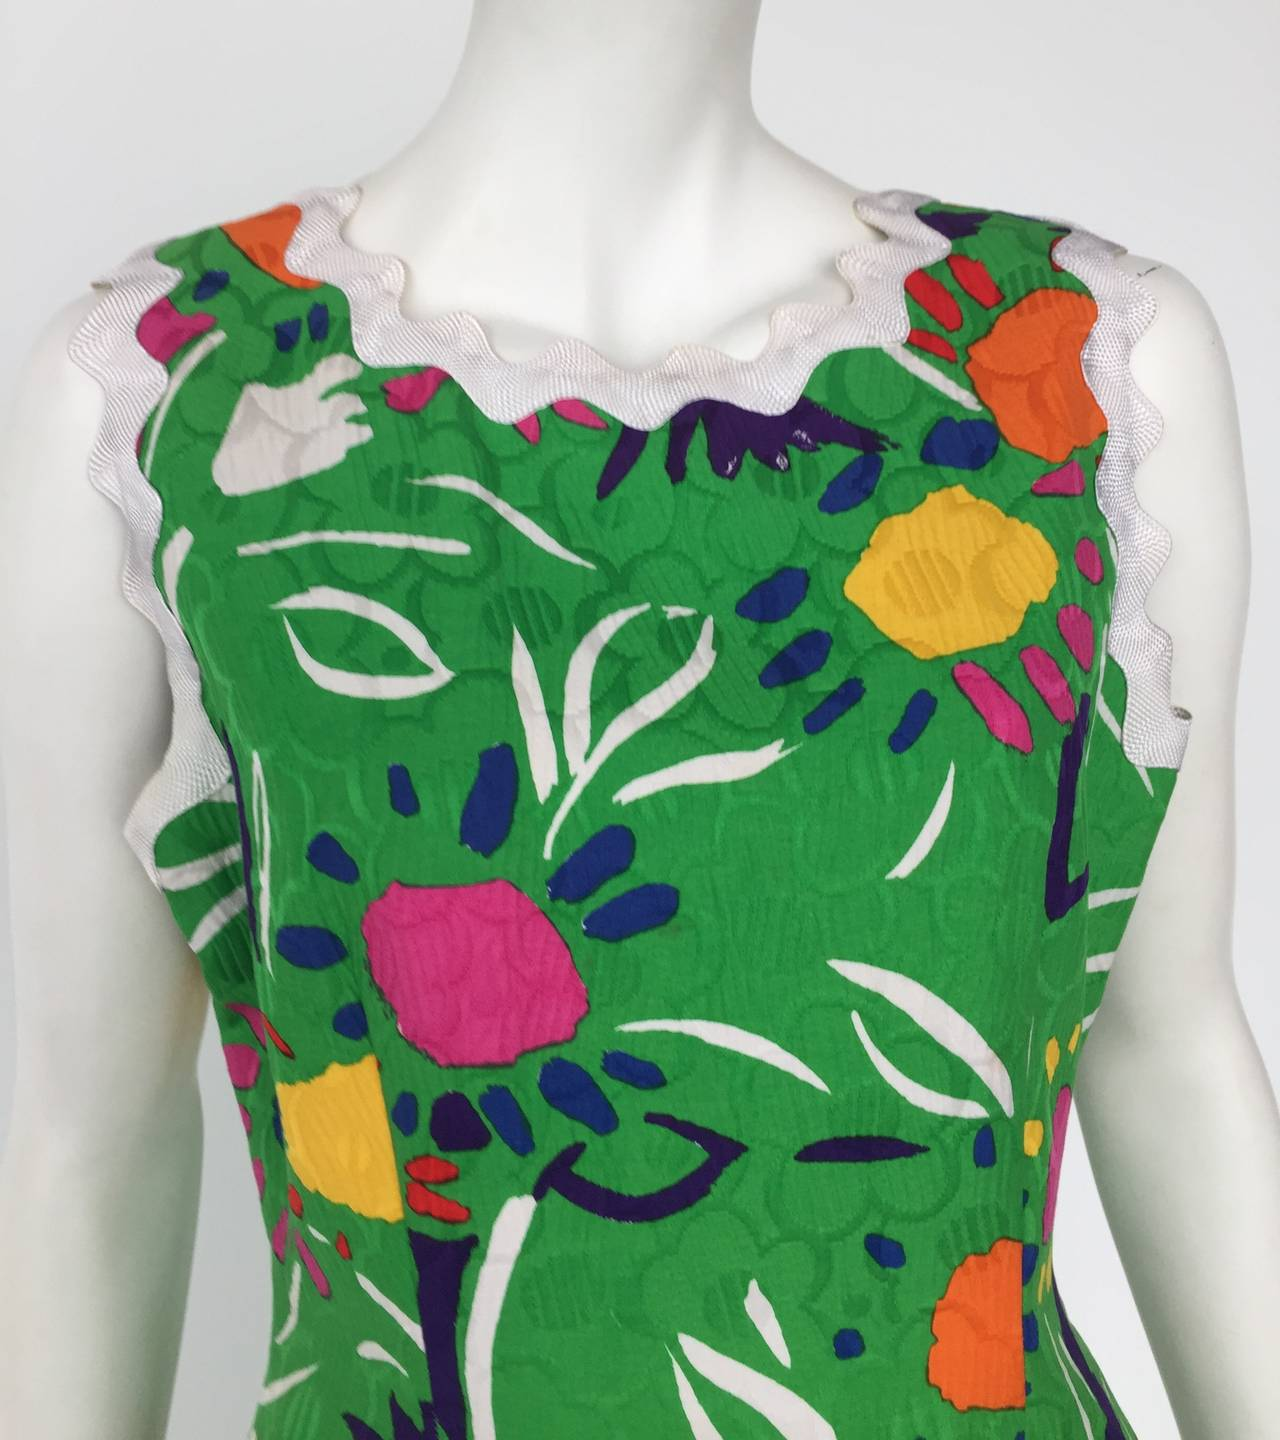 Bill Blass Sleeveless Cotton Dress Size 10. In Good Condition For Sale In Atlanta, GA